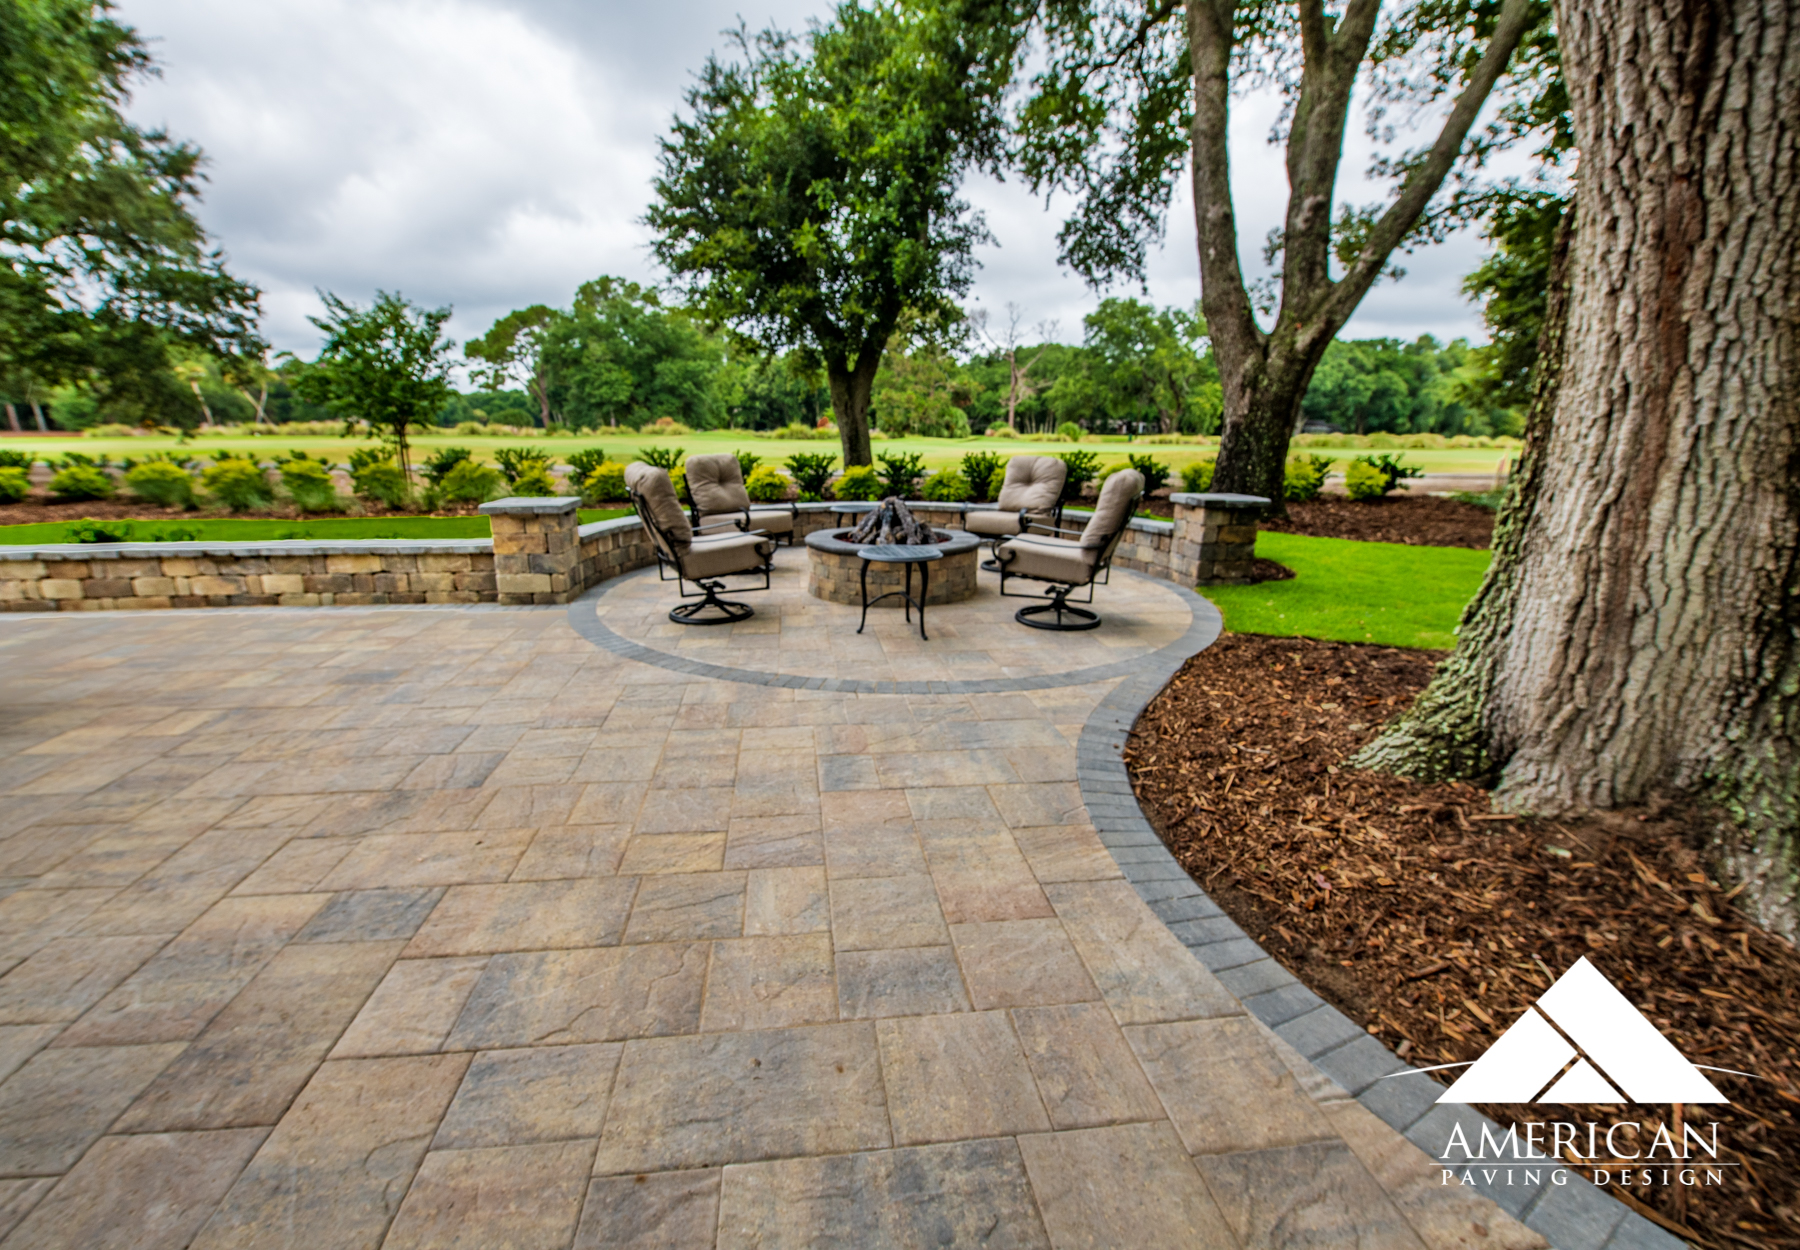 Pavers are great materials for backyard patios. They require little maintenance, withstand weather and come in multitudes of color.